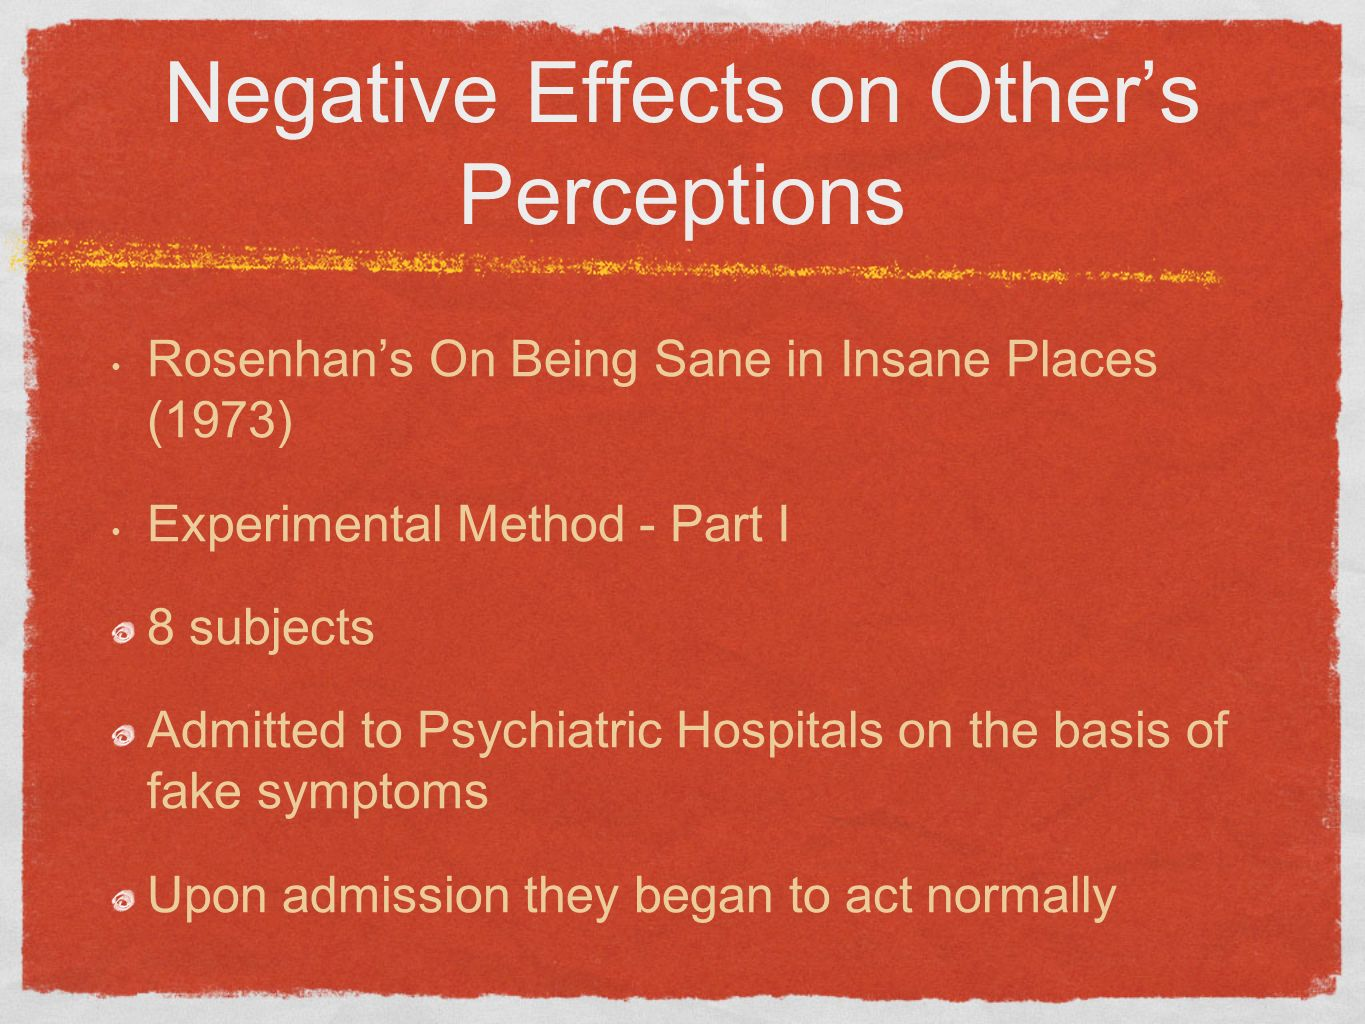 Negative Effects on Other's Perceptions